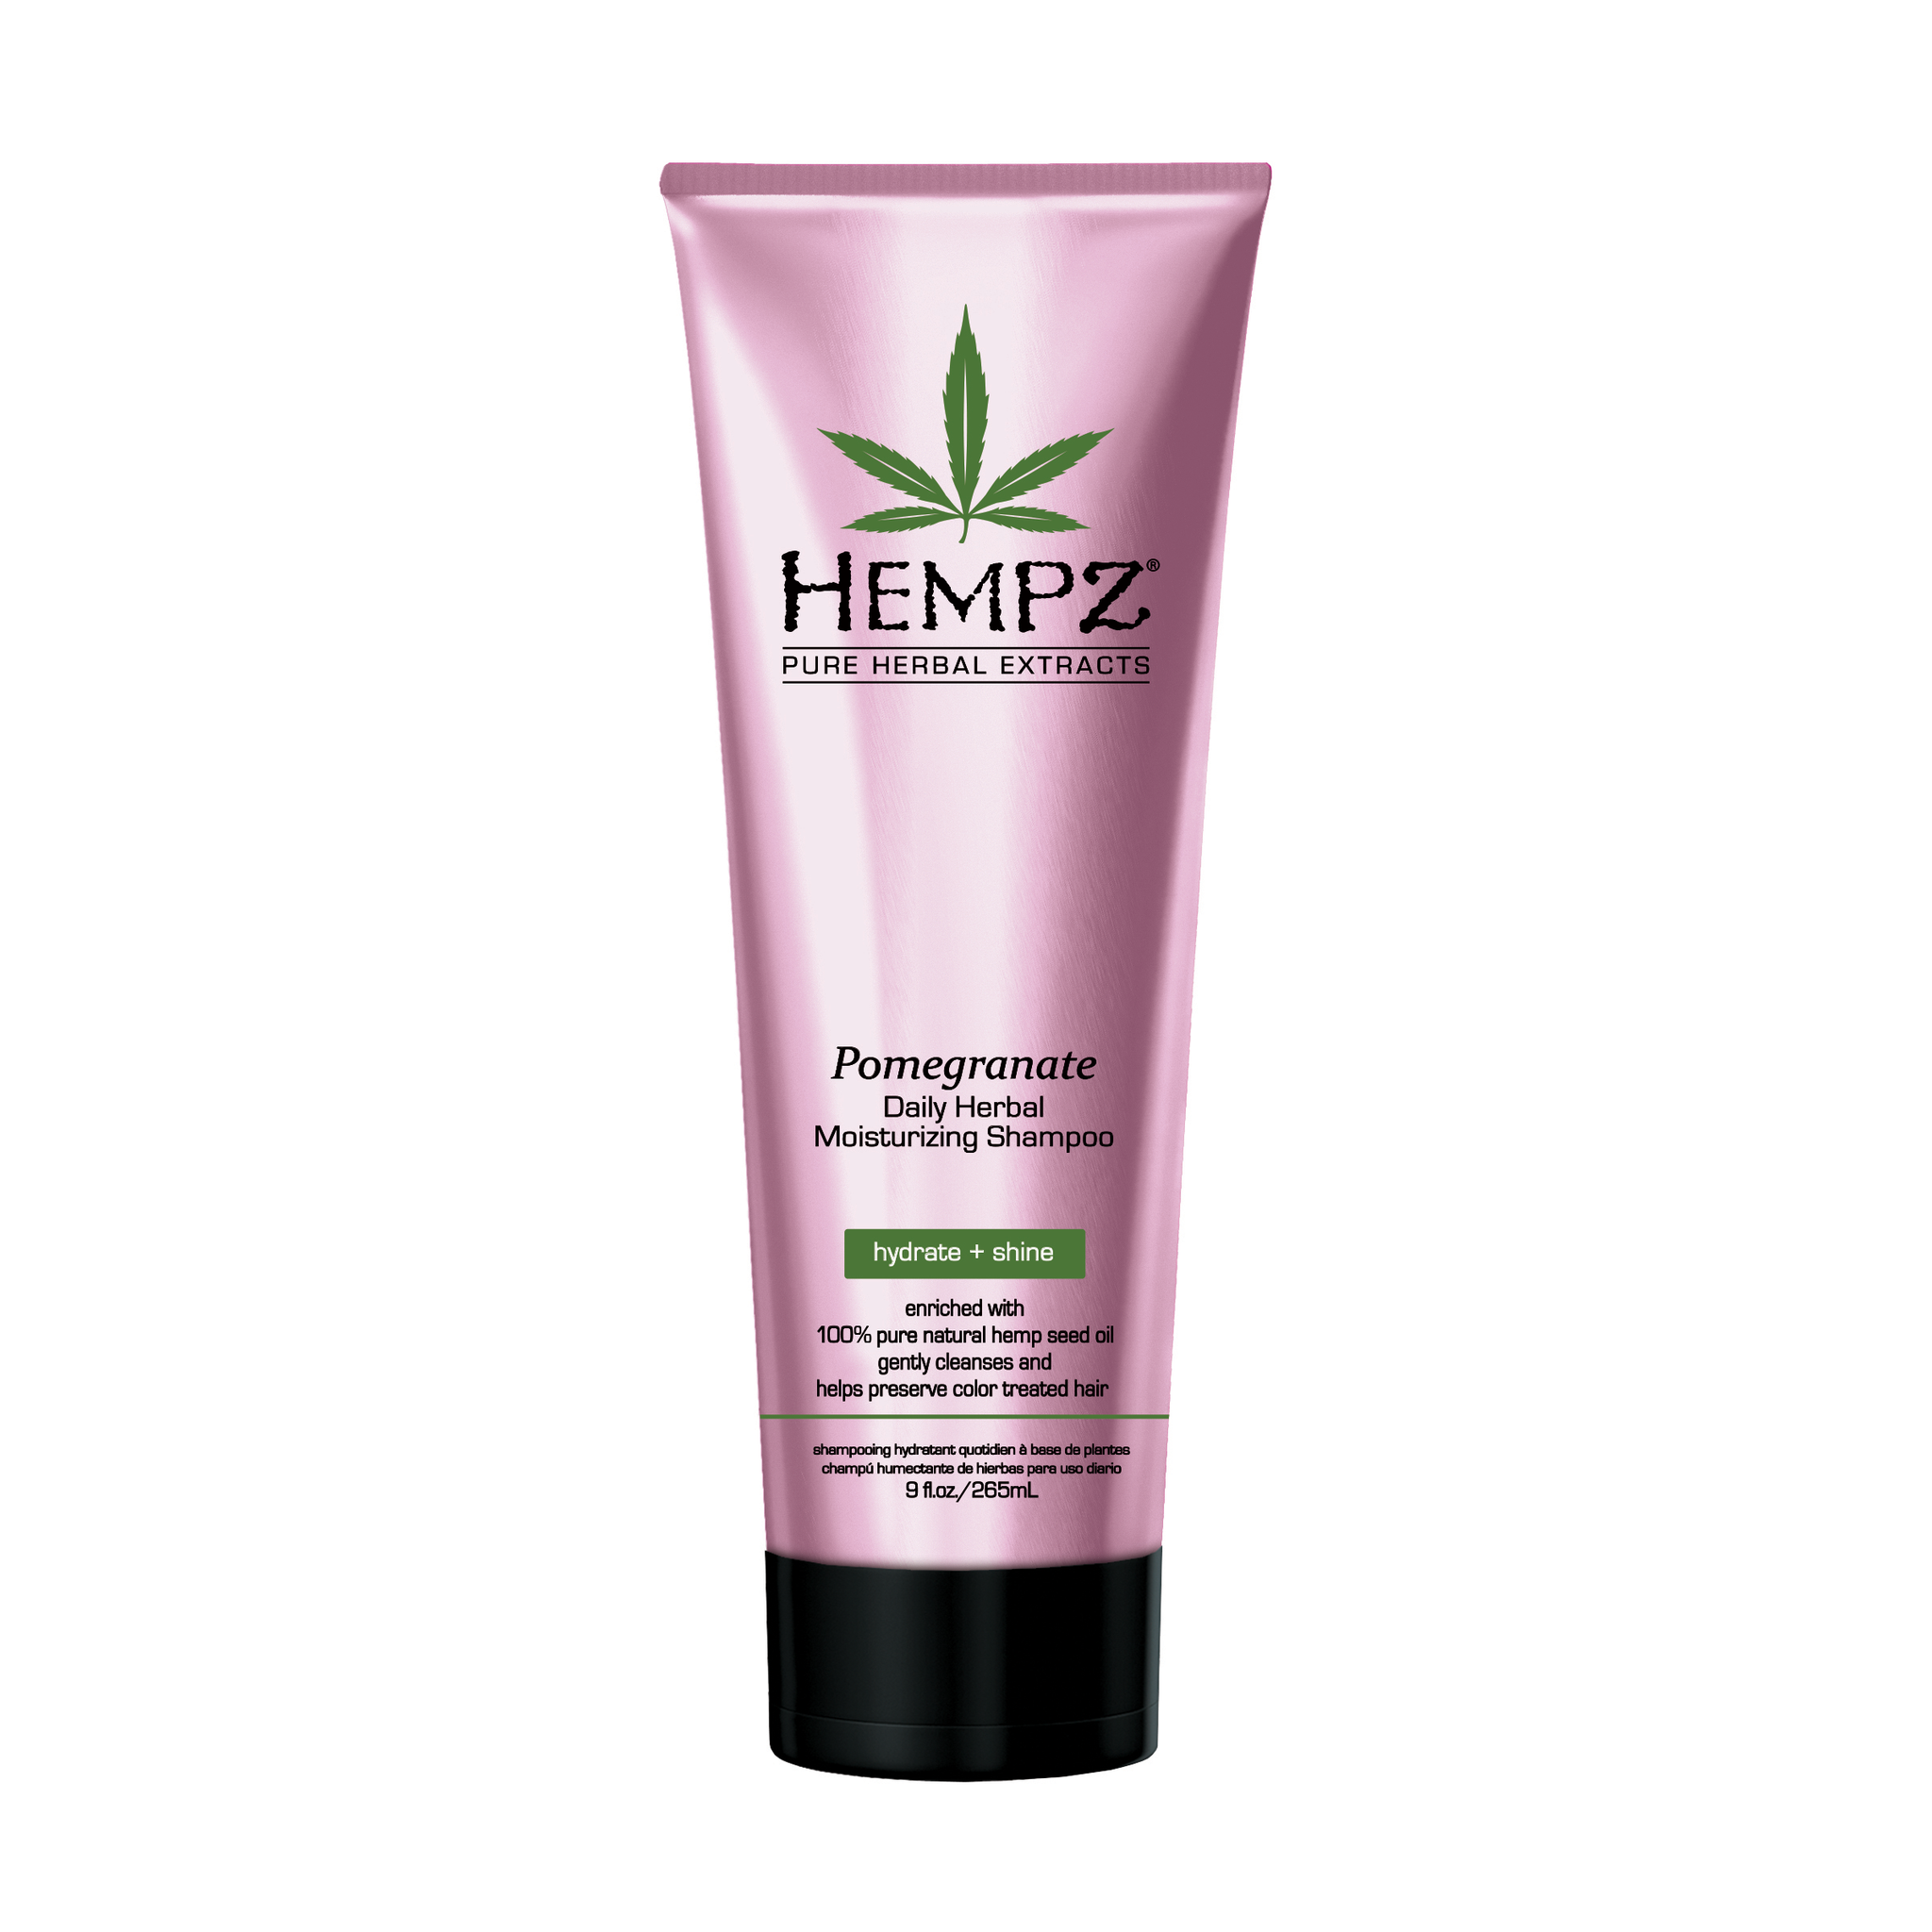 Pomegranate Shampoo & Conditioner | Hempz